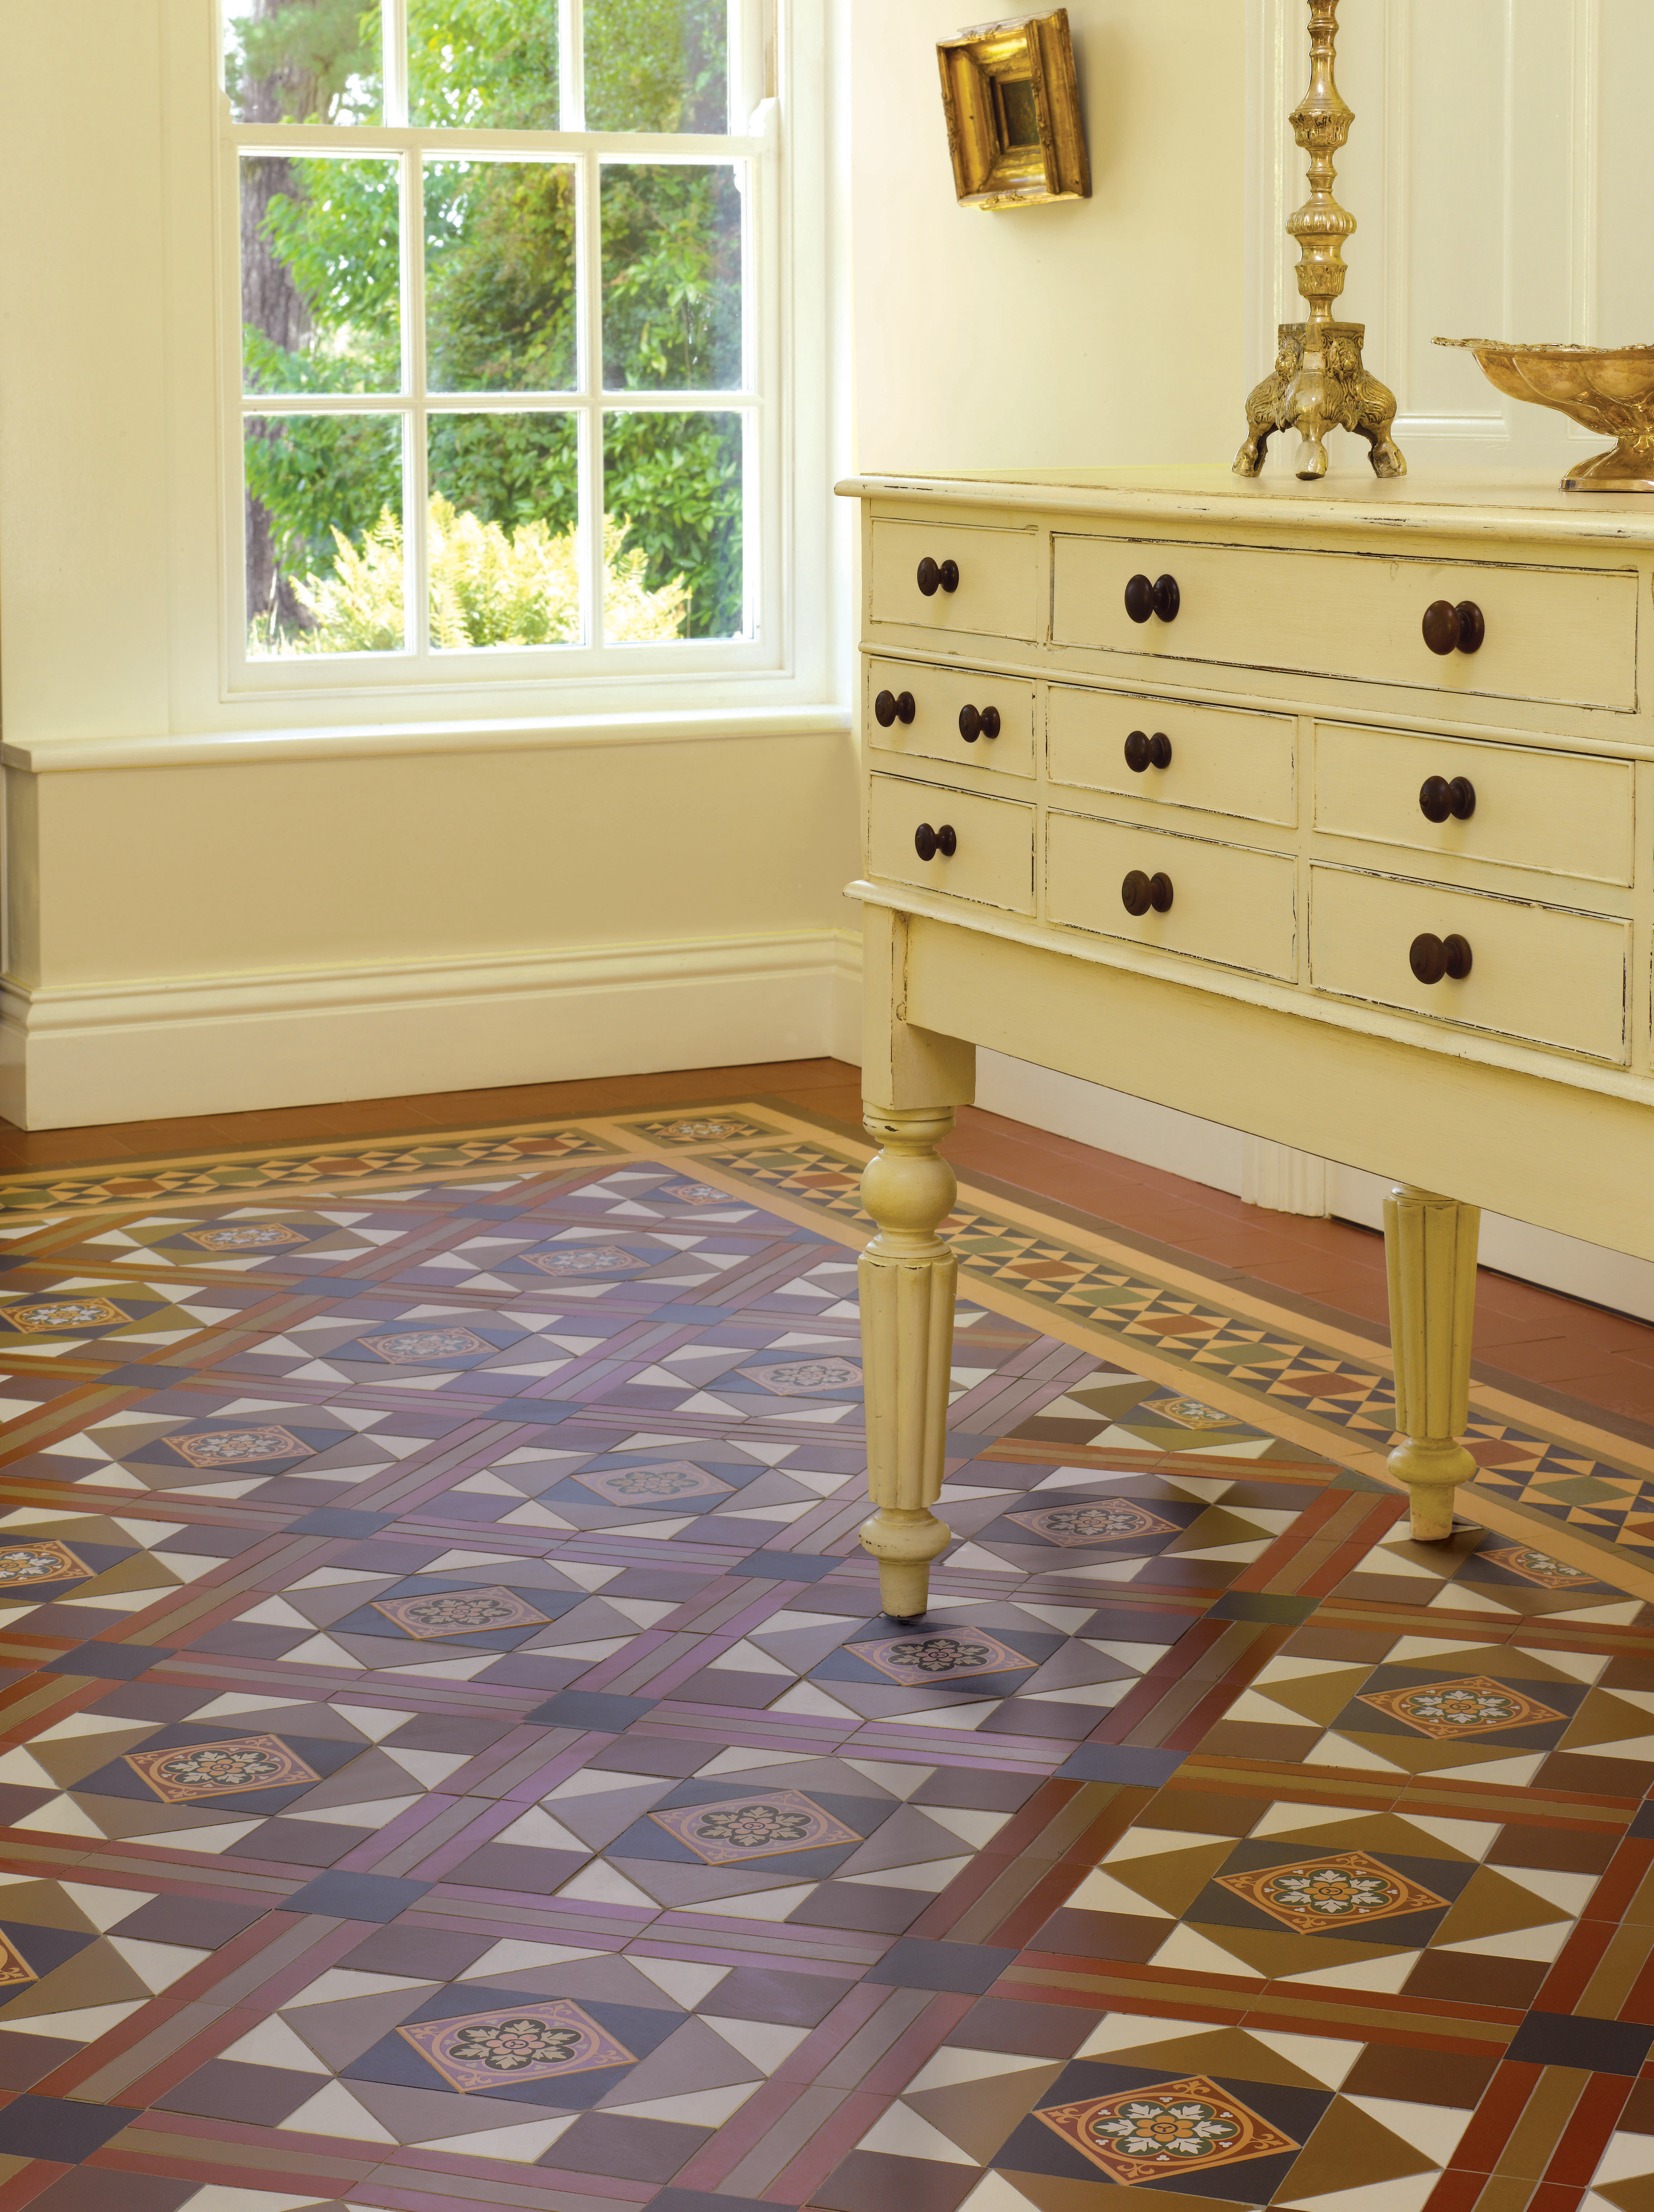 A warm welcome a guide to choosing hallway tiles lindisfarne pattern from the victorian floor tile range dailygadgetfo Images